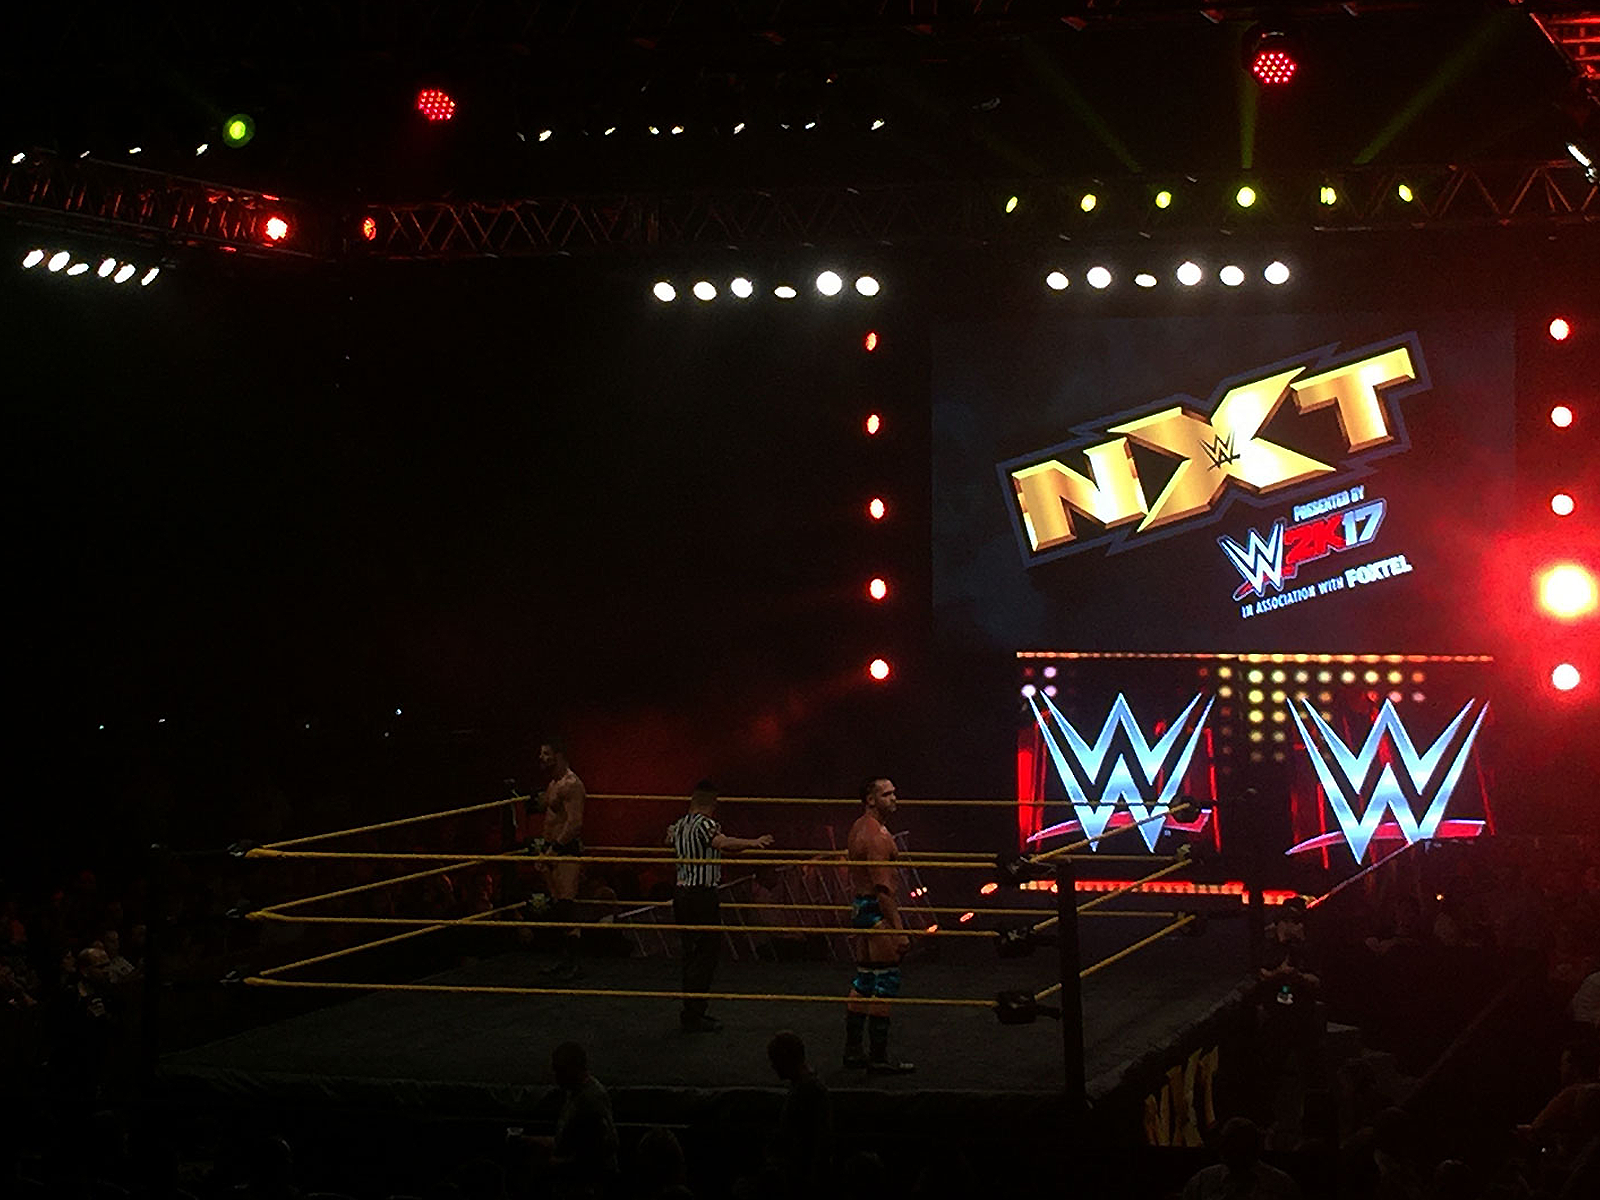 Wwe Nxt Gold Coast 2016